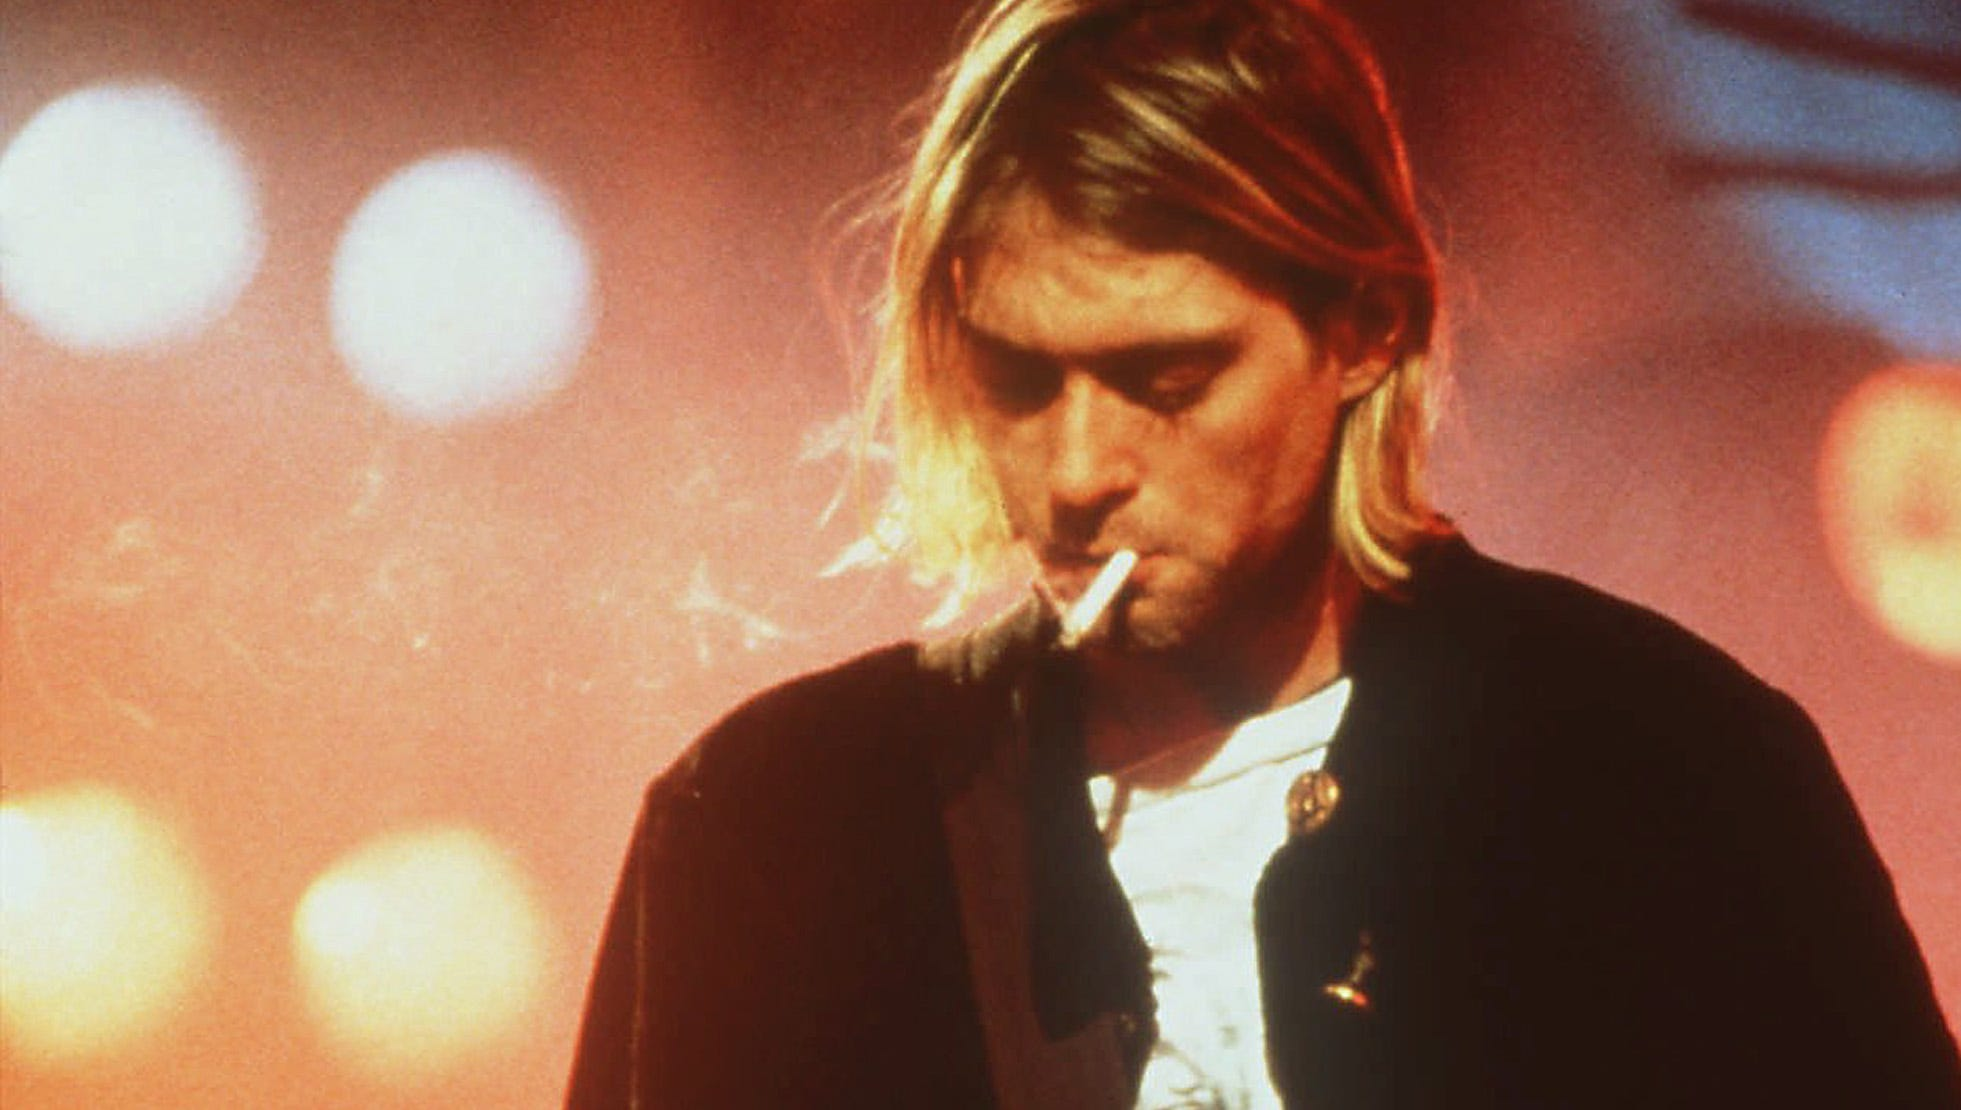 7   Times top-earning dead celebrity. From 2001 to 2008, he ruled the 'Forbes' list every year except 2006, when Kurt Cobain hopped to the top on the sale of the Nirvana catalog; Elvis placed second. More recent deaths (Michael Jackson, Elizabeth Taylor) have catapulted others above him, but he's made $565 million since the list started 12 years ago.